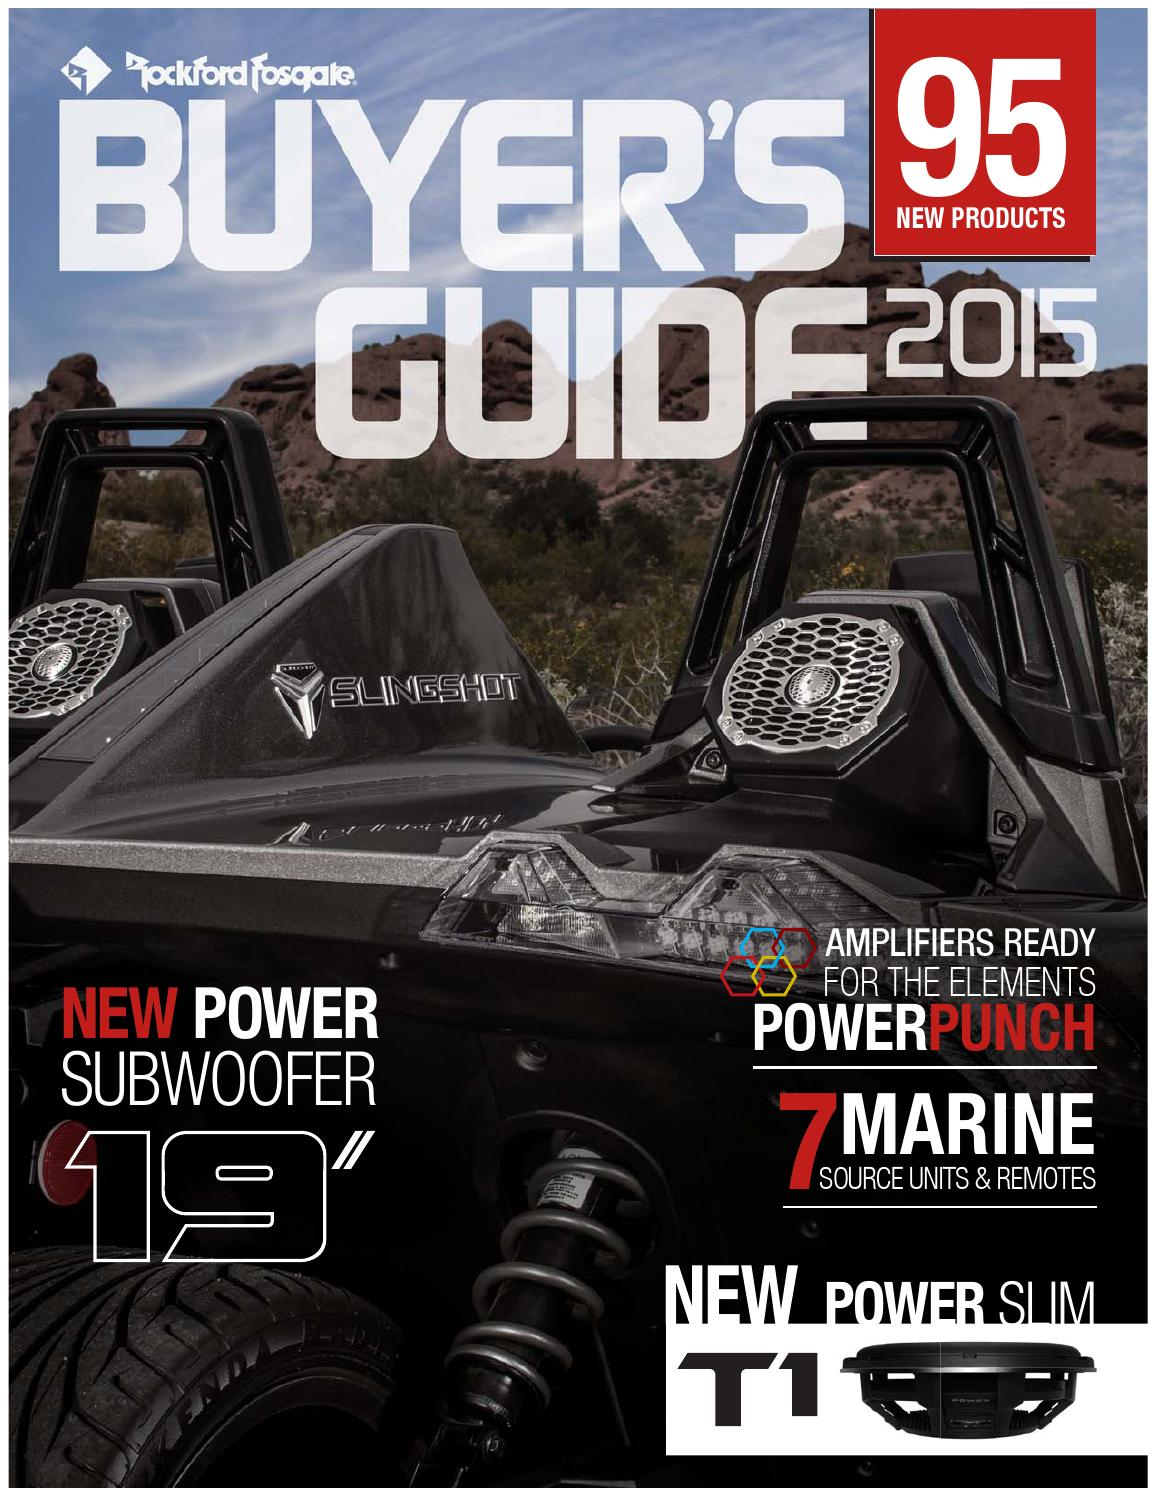 2015 Volume7 Buyers Guide By Rockford Fosgate Issuu Rfk1d Dual Amp 0 Gauge Awg Wiring Kit Car Audio Direct